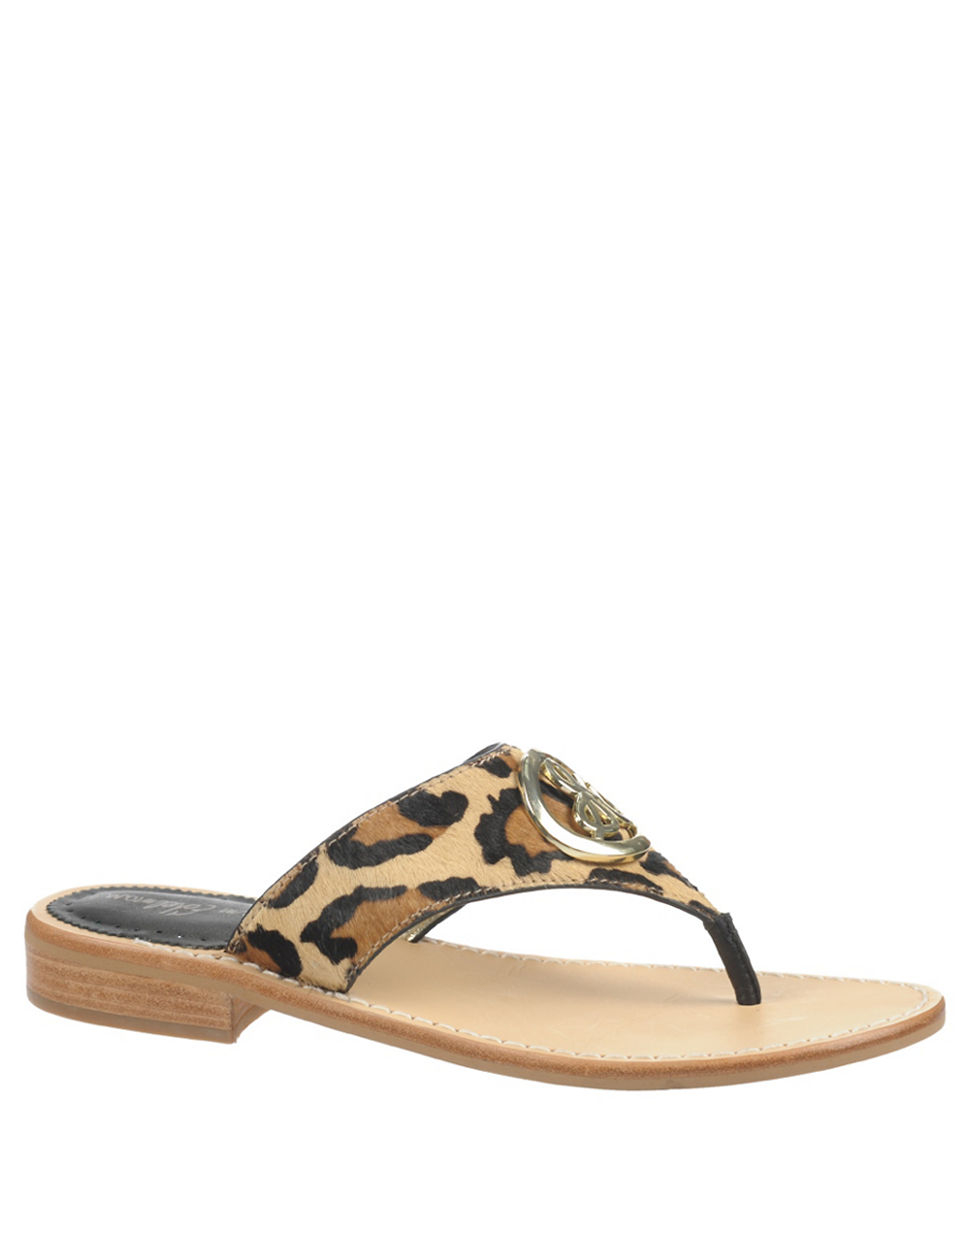 Sam Edelman Trevor Leopard Printed Sandals further Oscar And Izzy Folksy Love 6 X 6 Glossy Decorative Tile In A Boo Pink Purple IZI1583 further 695243 in addition Miley Cyrus Pregnancy Pink Dress likewise Startemplate. on oscar ornament